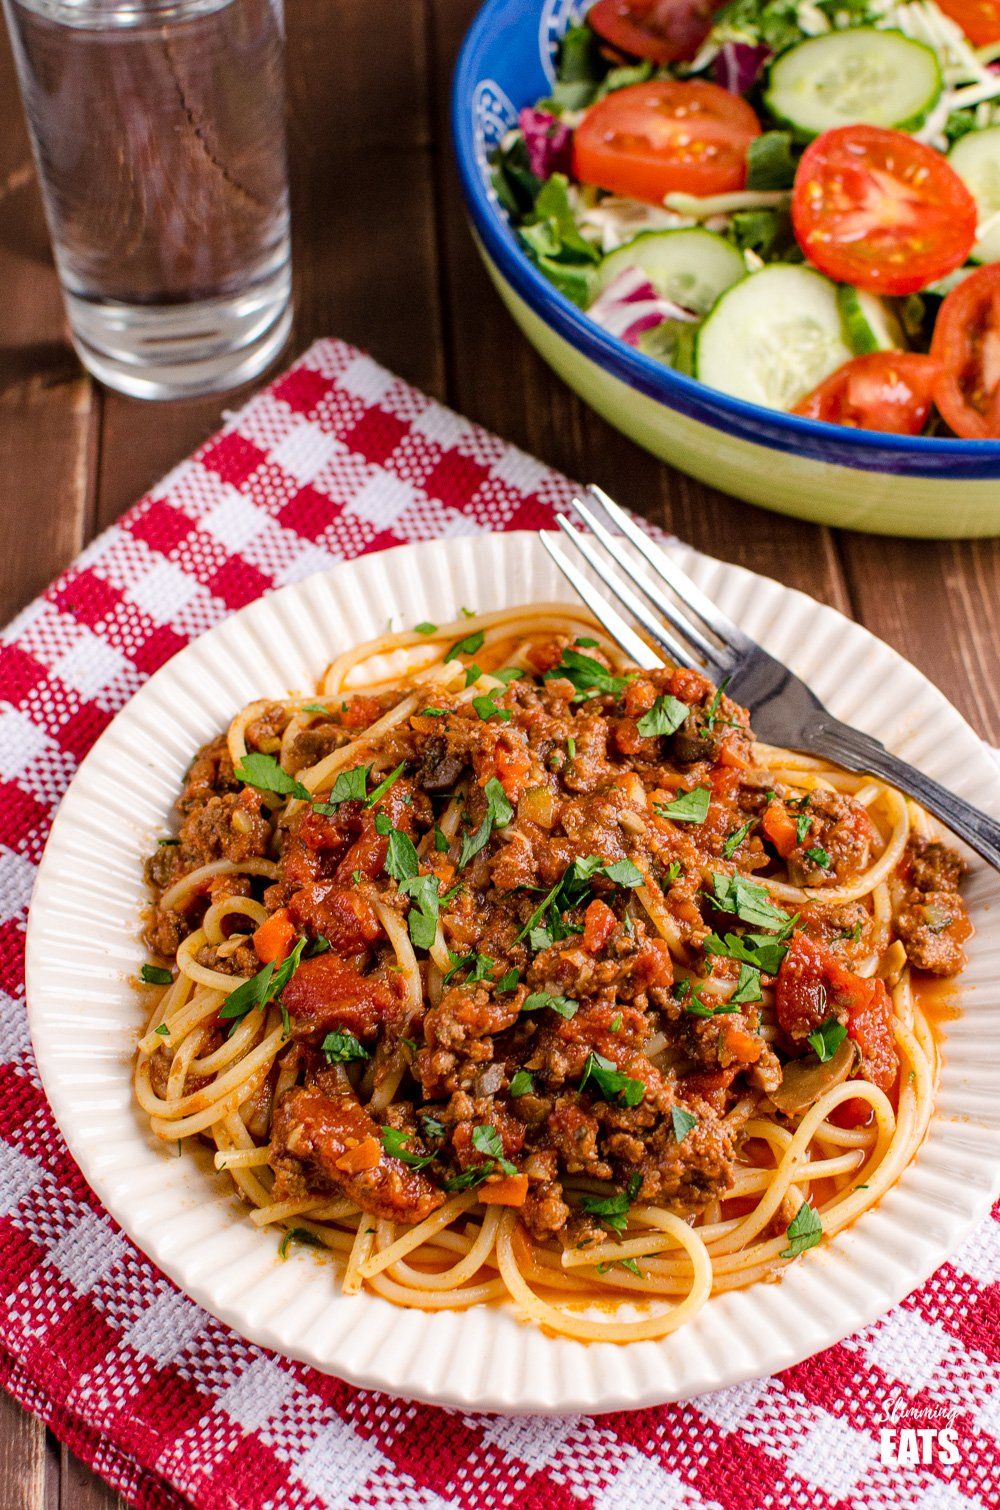 bolognese meat sauce over spaghetti on a whiter ridged plate with salad bowl and glass of water in background